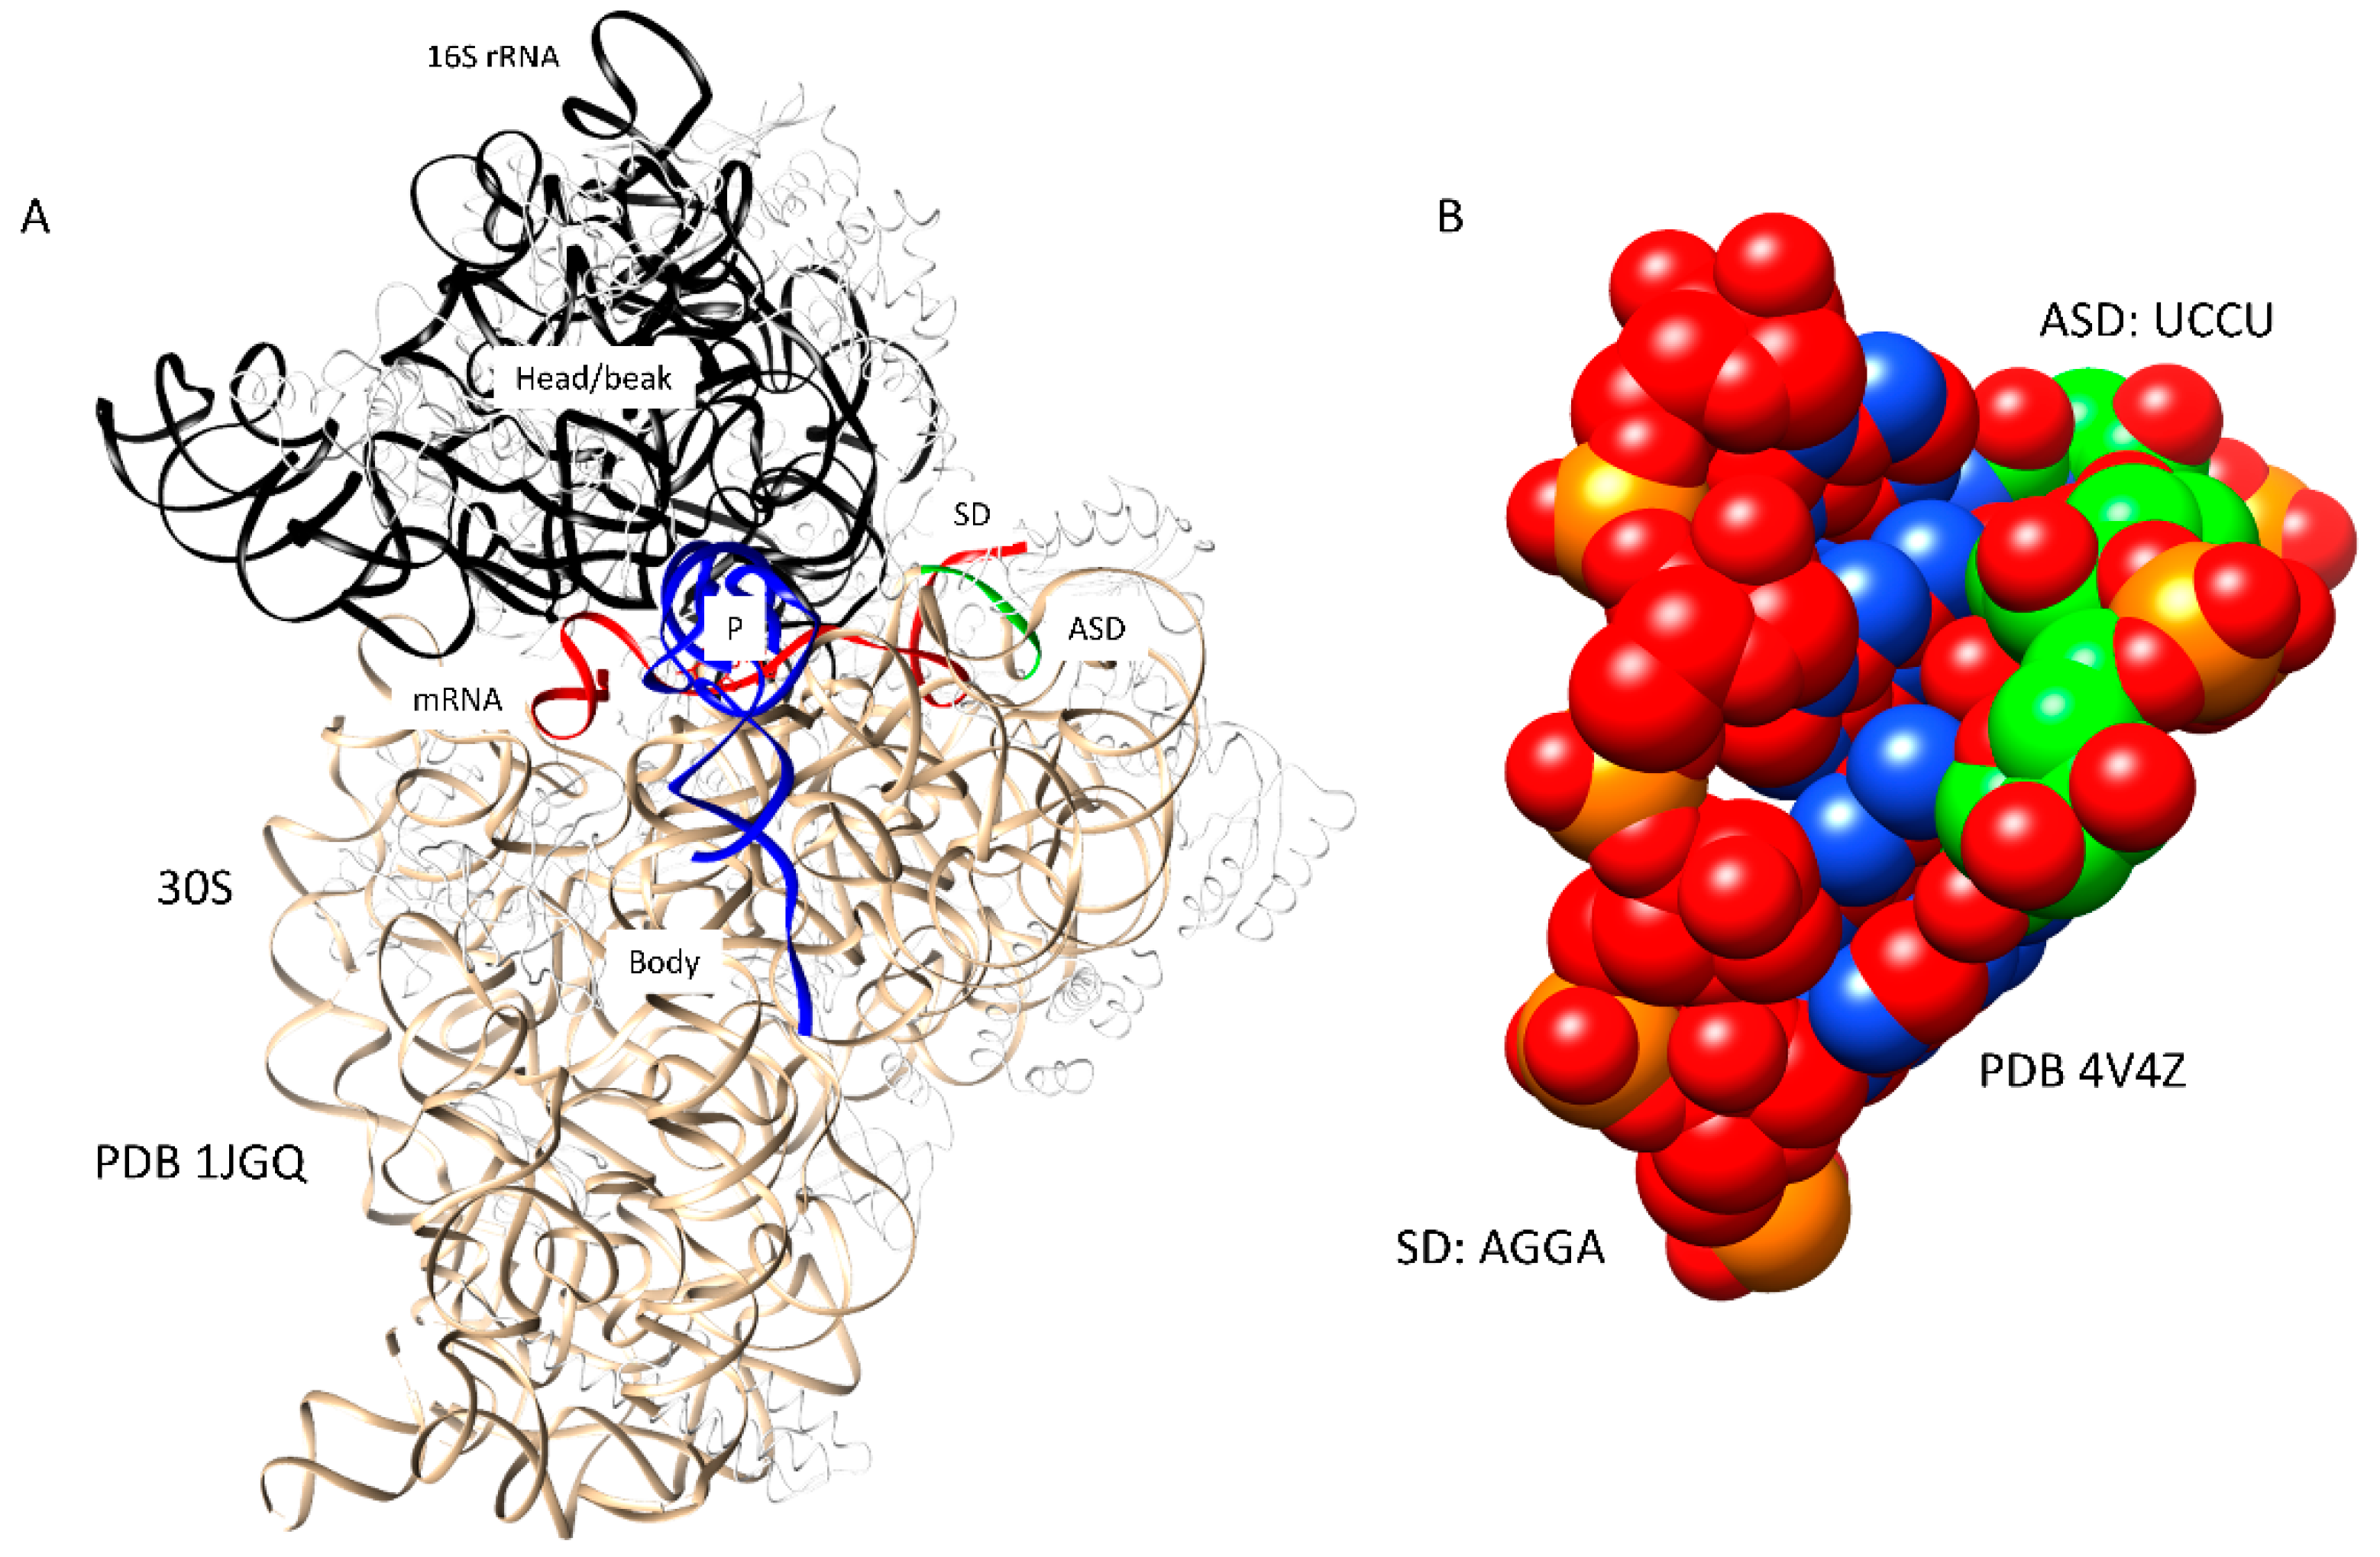 ijms 20 00040 g001 ijms free full text ribosome structure, function, and early